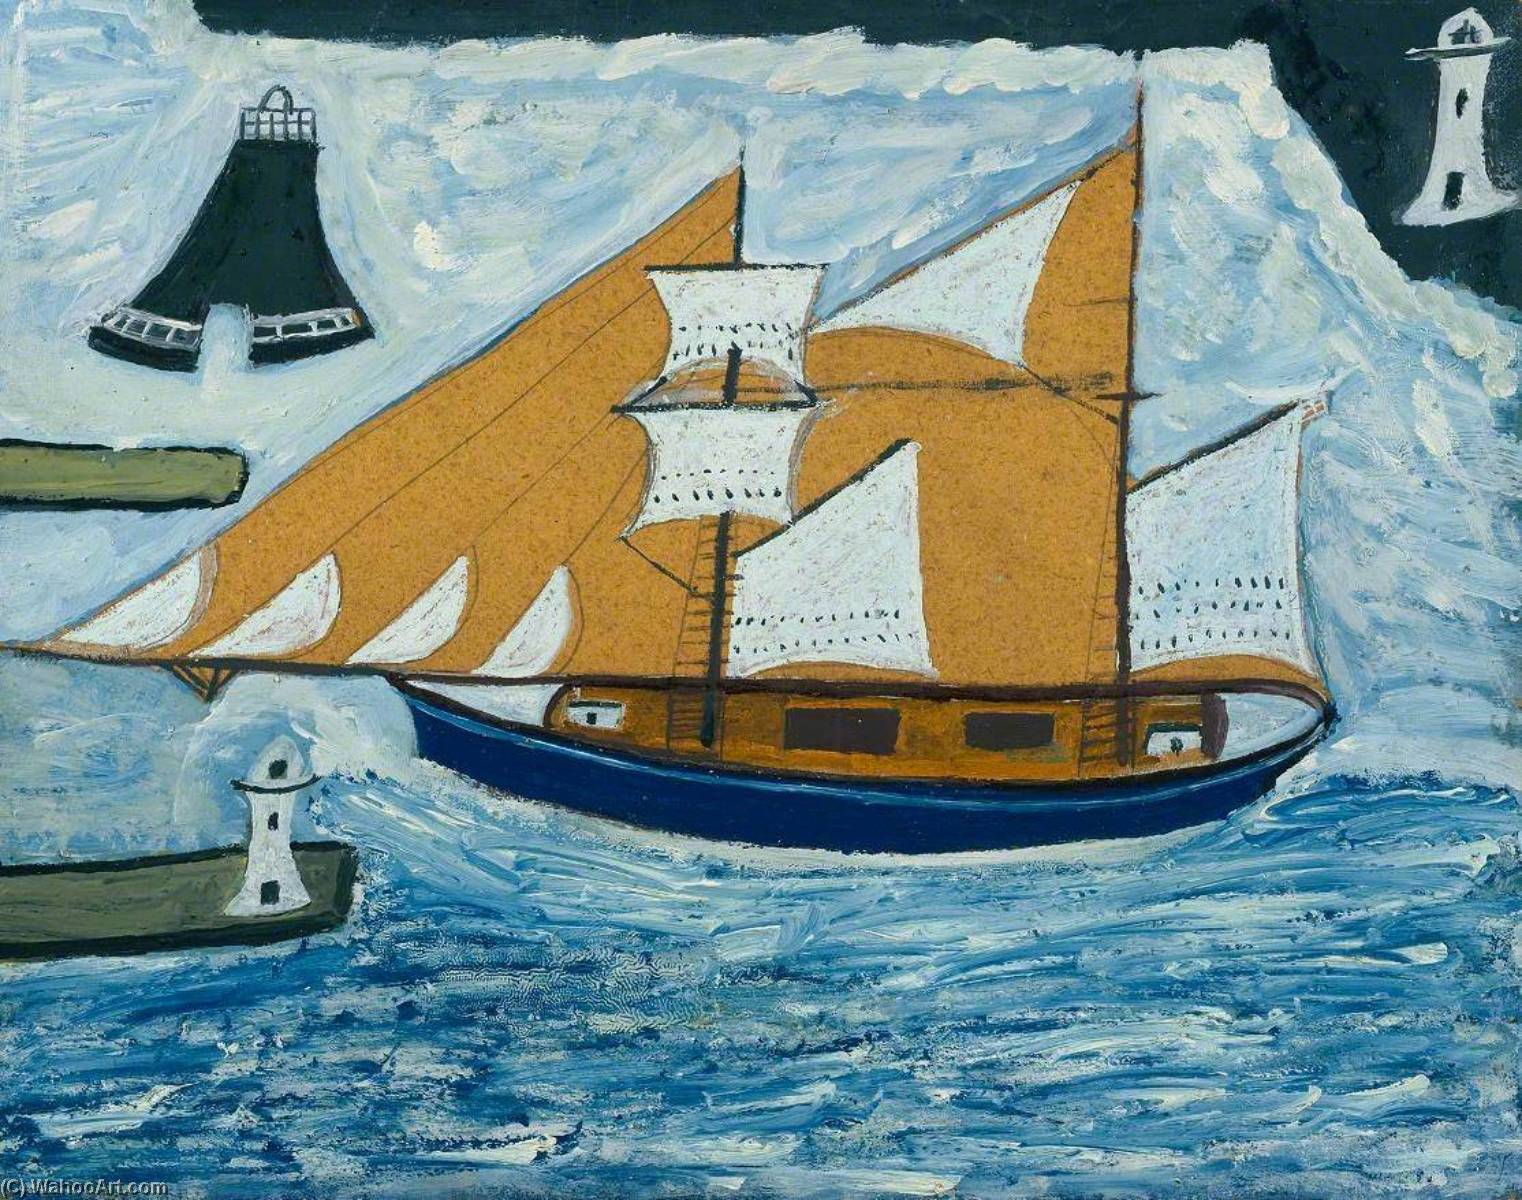 el azul despachar , madera de Alfred Wallis (1855-1942, United Kingdom)